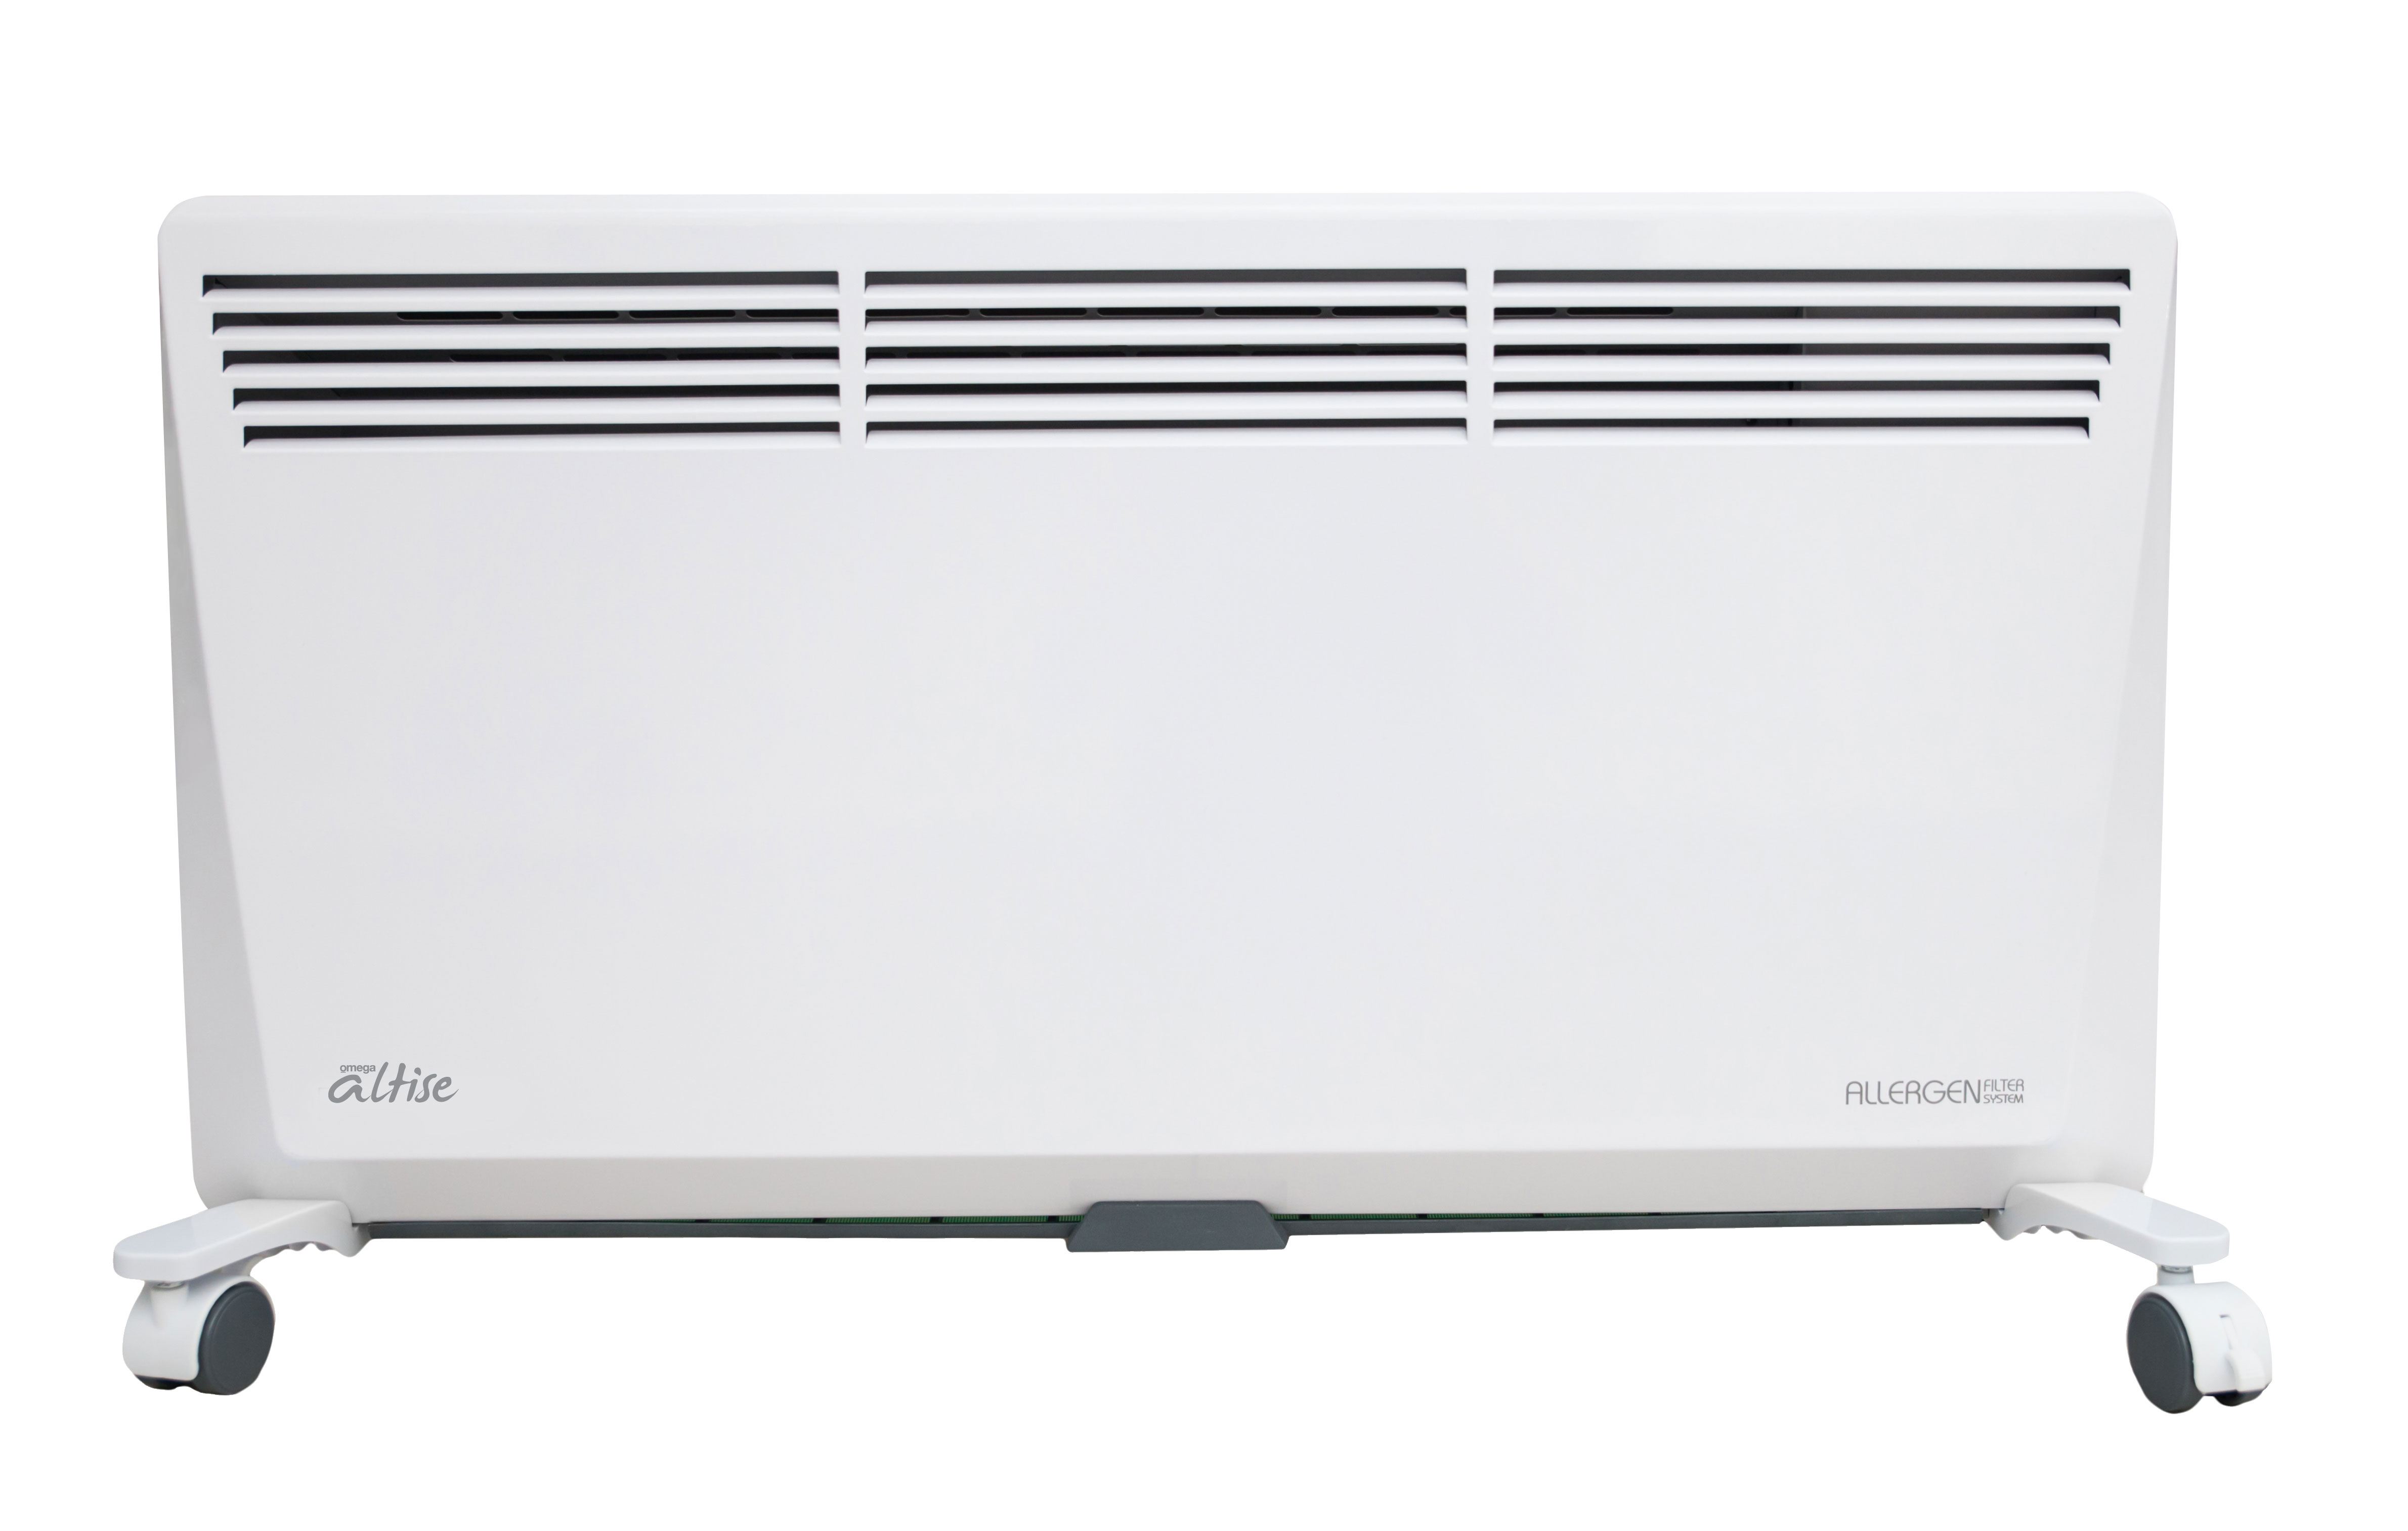 Omega Altise Product Panel Heater - With Filter1500W(ANPE1500W)